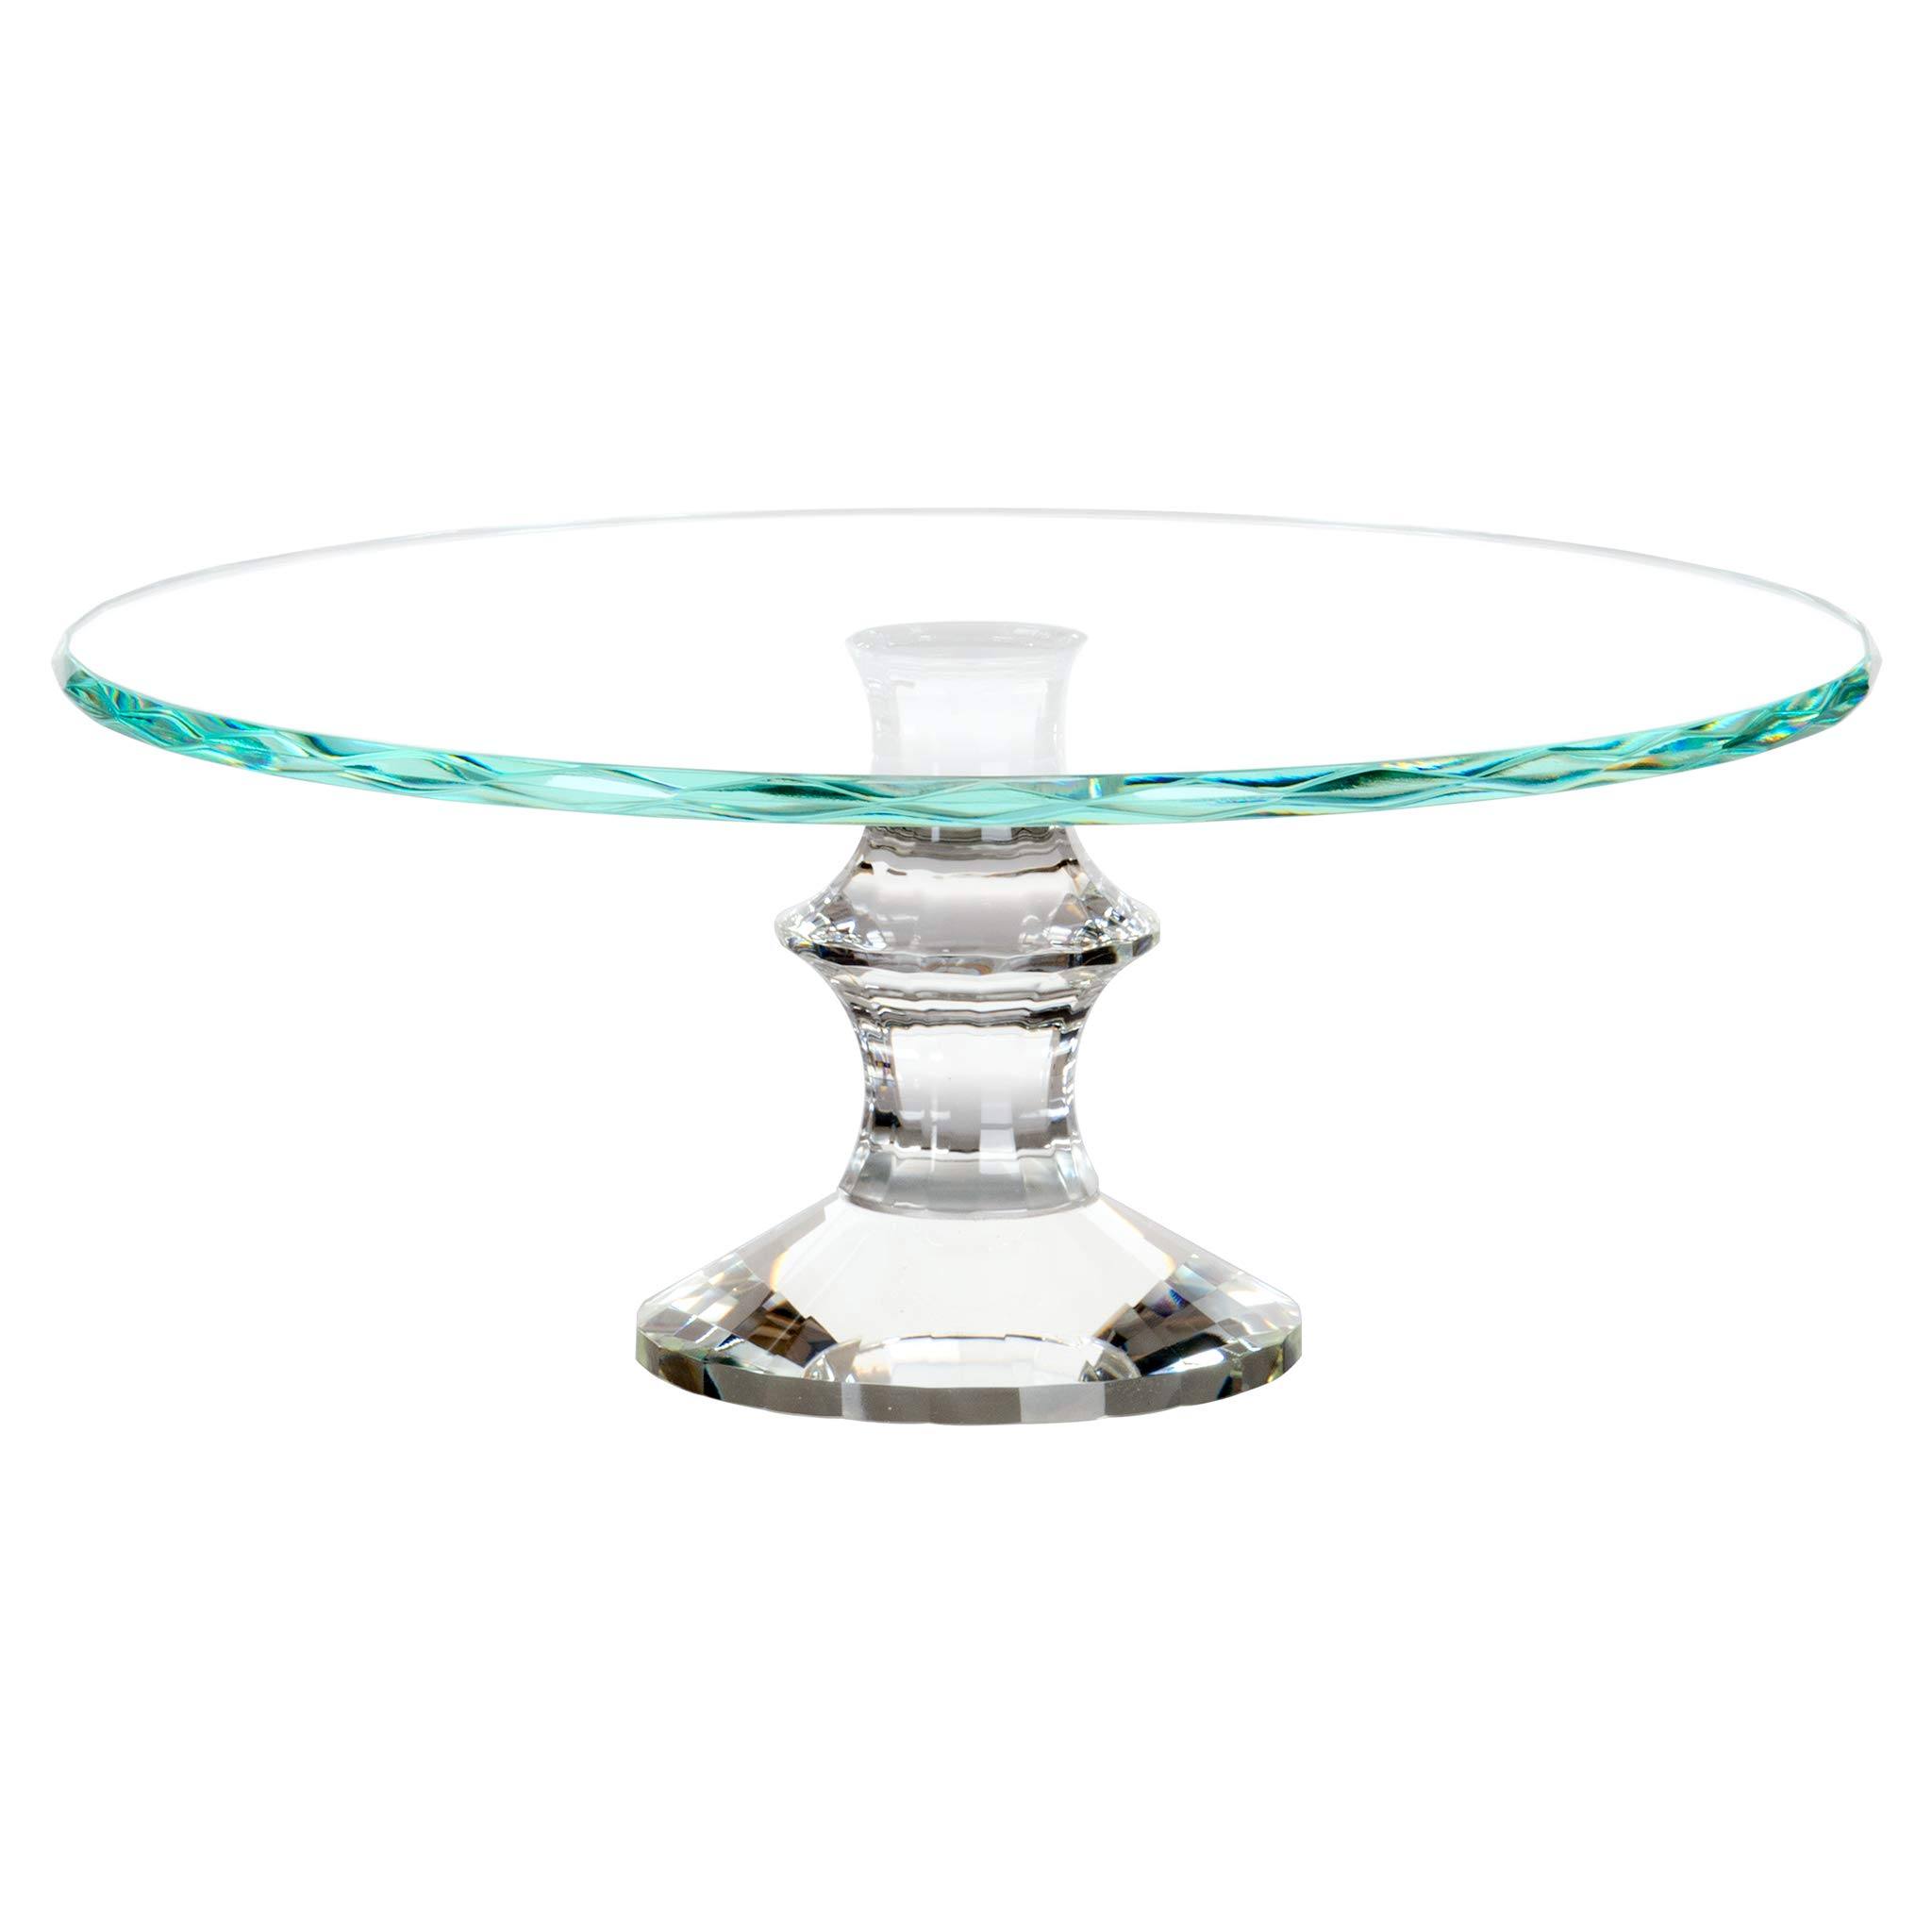 Amalfi Decor 12 Inch Glass Crystal Cake Stand, Dessert Cupcake Pastry Candy Cookie Display Plate for Wedding Event Birthday Party, Round Modern Diamond Gem Pedestal Holder by Amalfi Décor